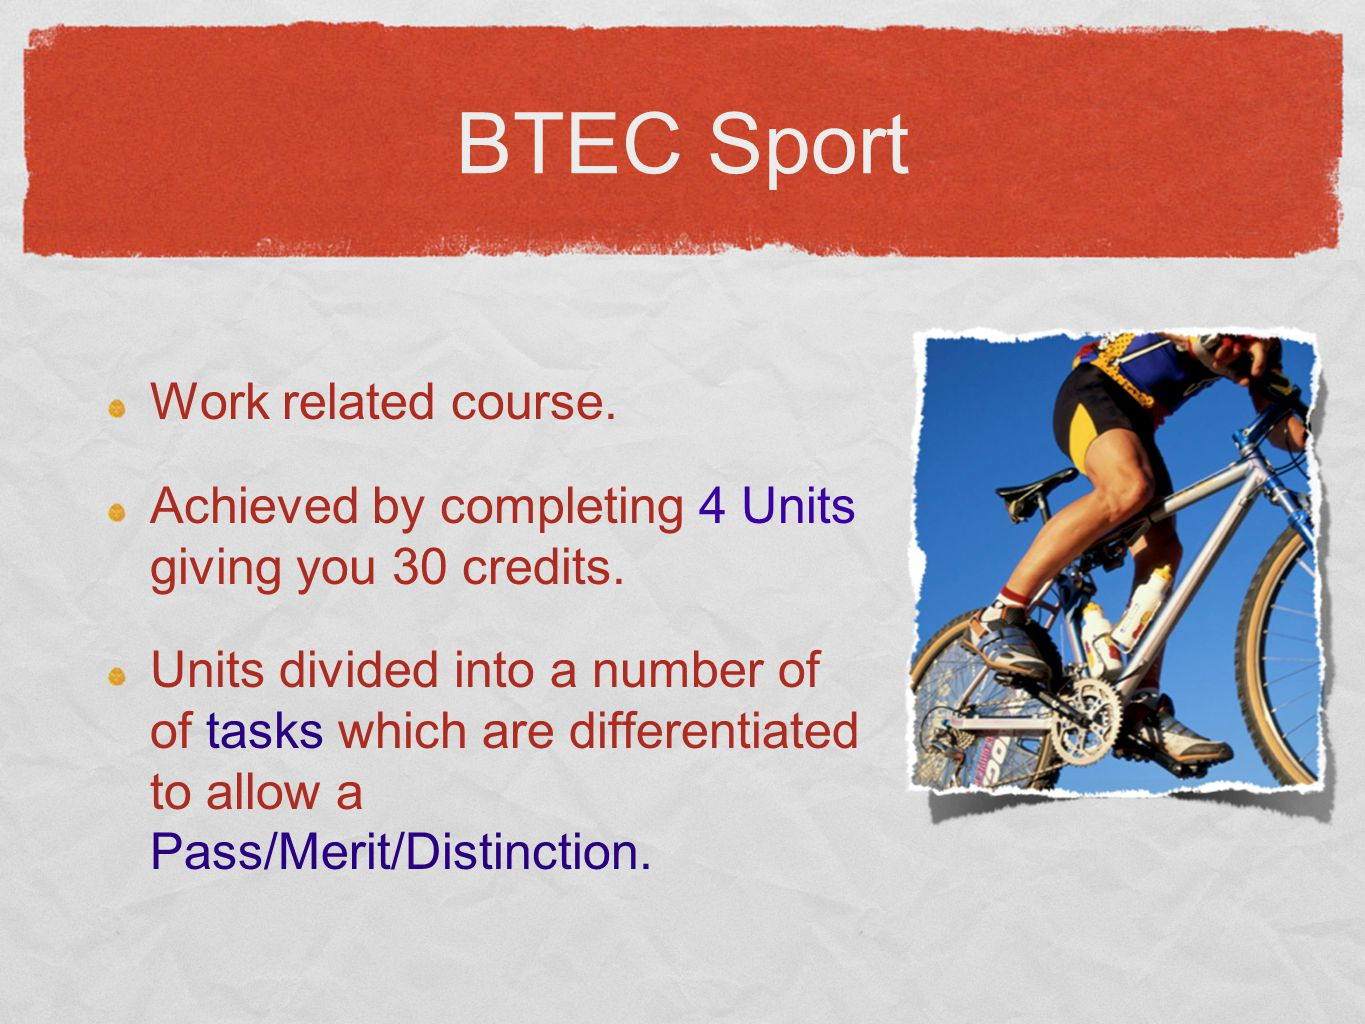 BTEC Sport Work related course. Achieved by completing 4 Units giving you 30 credits.